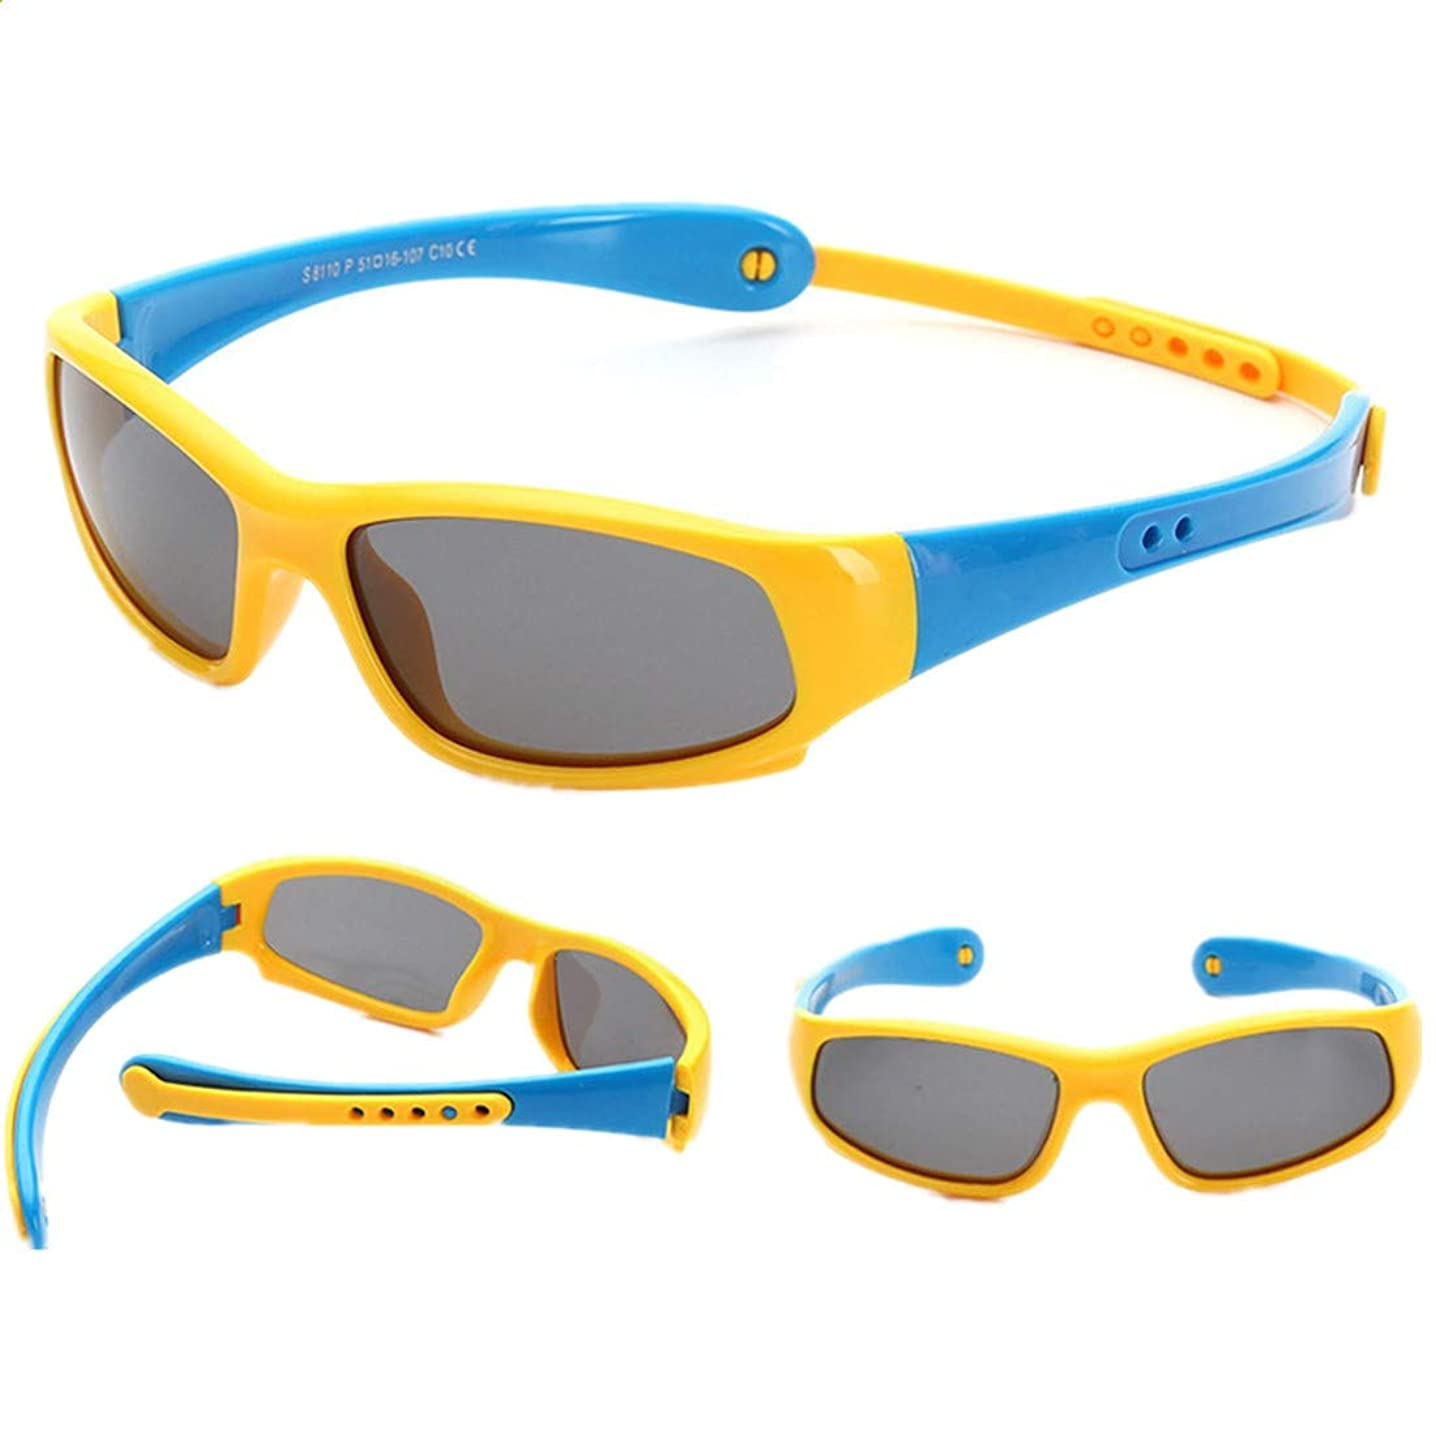 Famyfirst Toddler Sunglasses with Strap, UV Proof Flexible Silicone Rubber Unbreakable Polarized Sport Sunglasses for Kids Boys Girls Youth Baby Children Age 3-10 (Yellow Blue)